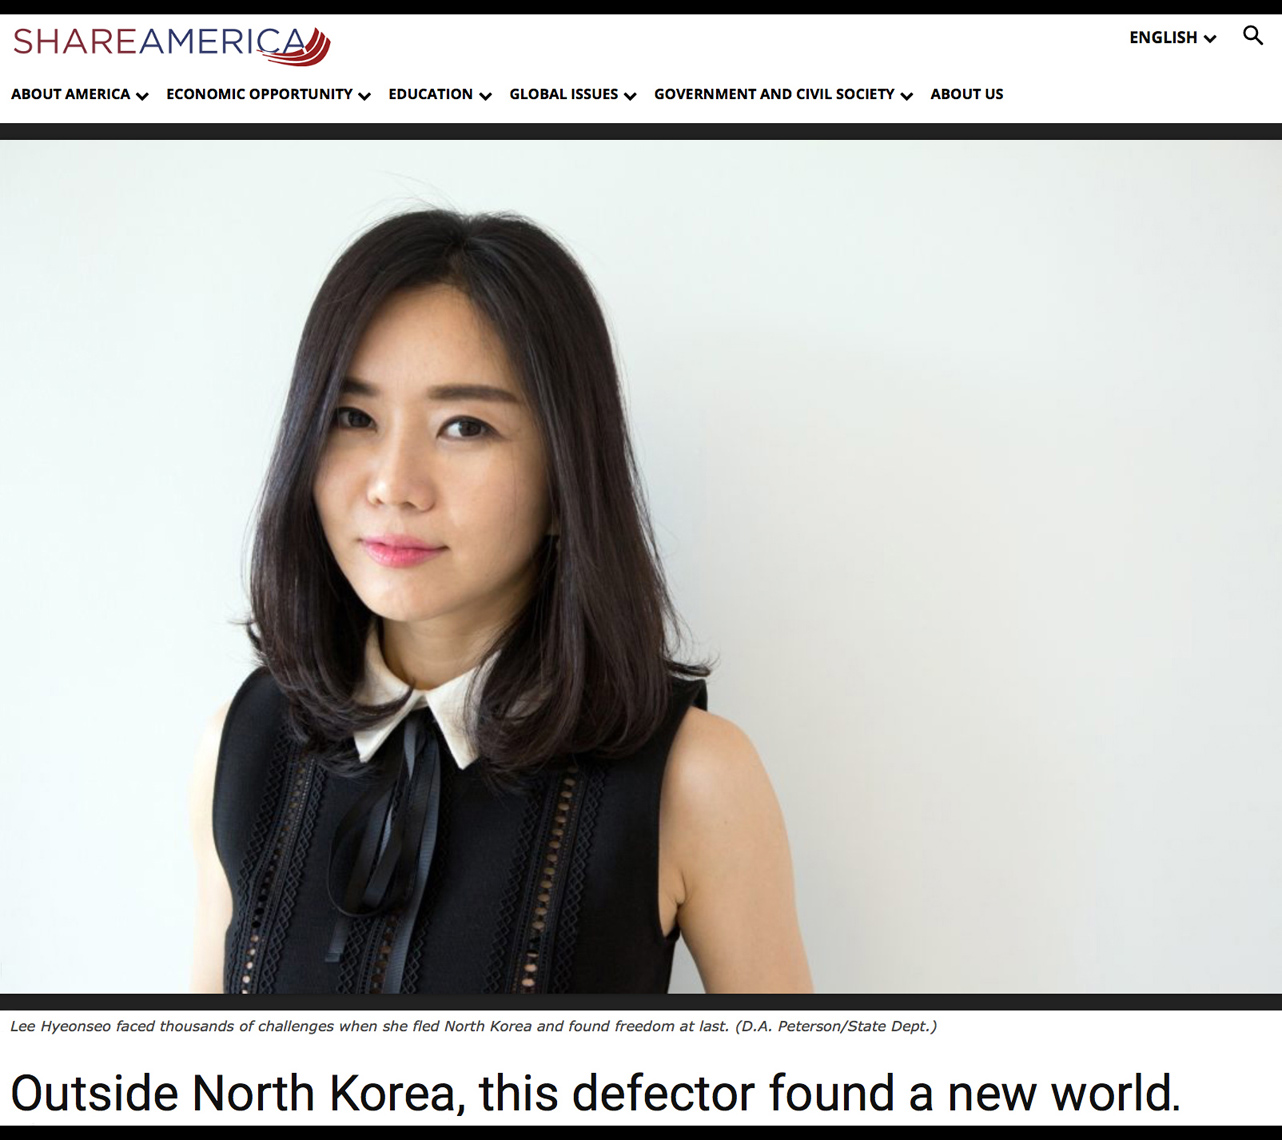 North Korean Defector Hyeonseo Lee